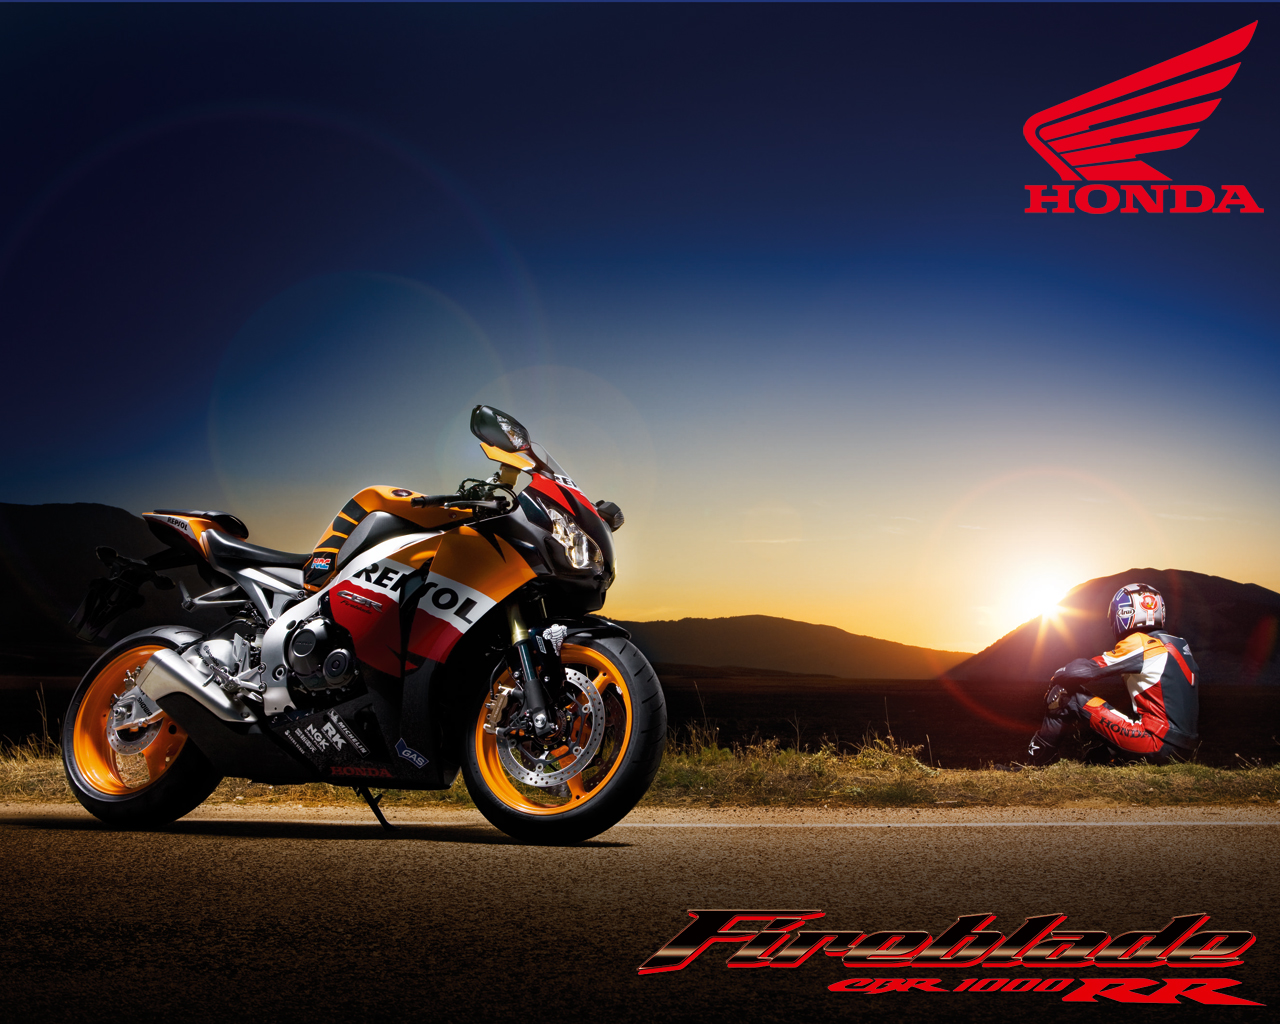 Repsol honda cbr motogp on sunset in montain wallpaper honda cbr | Ideias para a casa | Pinterest